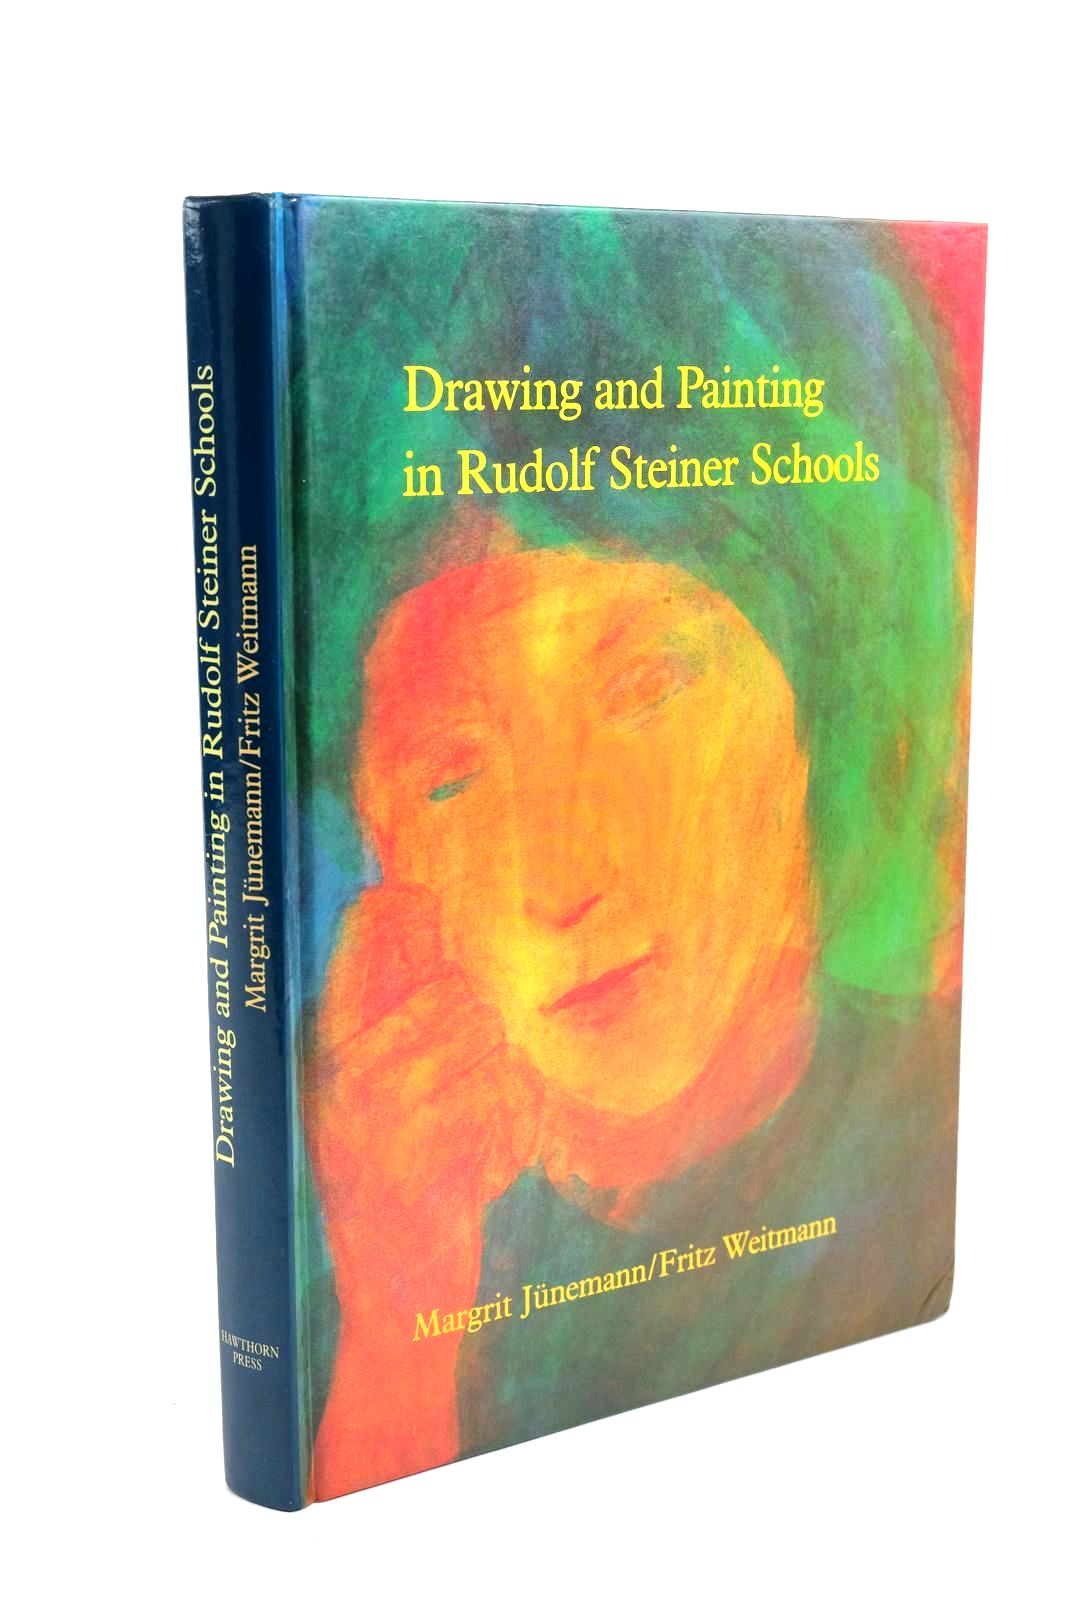 Photo of DRAWING AND PAINTING IN RUDOLF STEINER SCHOOLS written by Junemann, Margrit Weitmann, Fritz published by The Hawthorn Press (STOCK CODE: 1321495)  for sale by Stella & Rose's Books